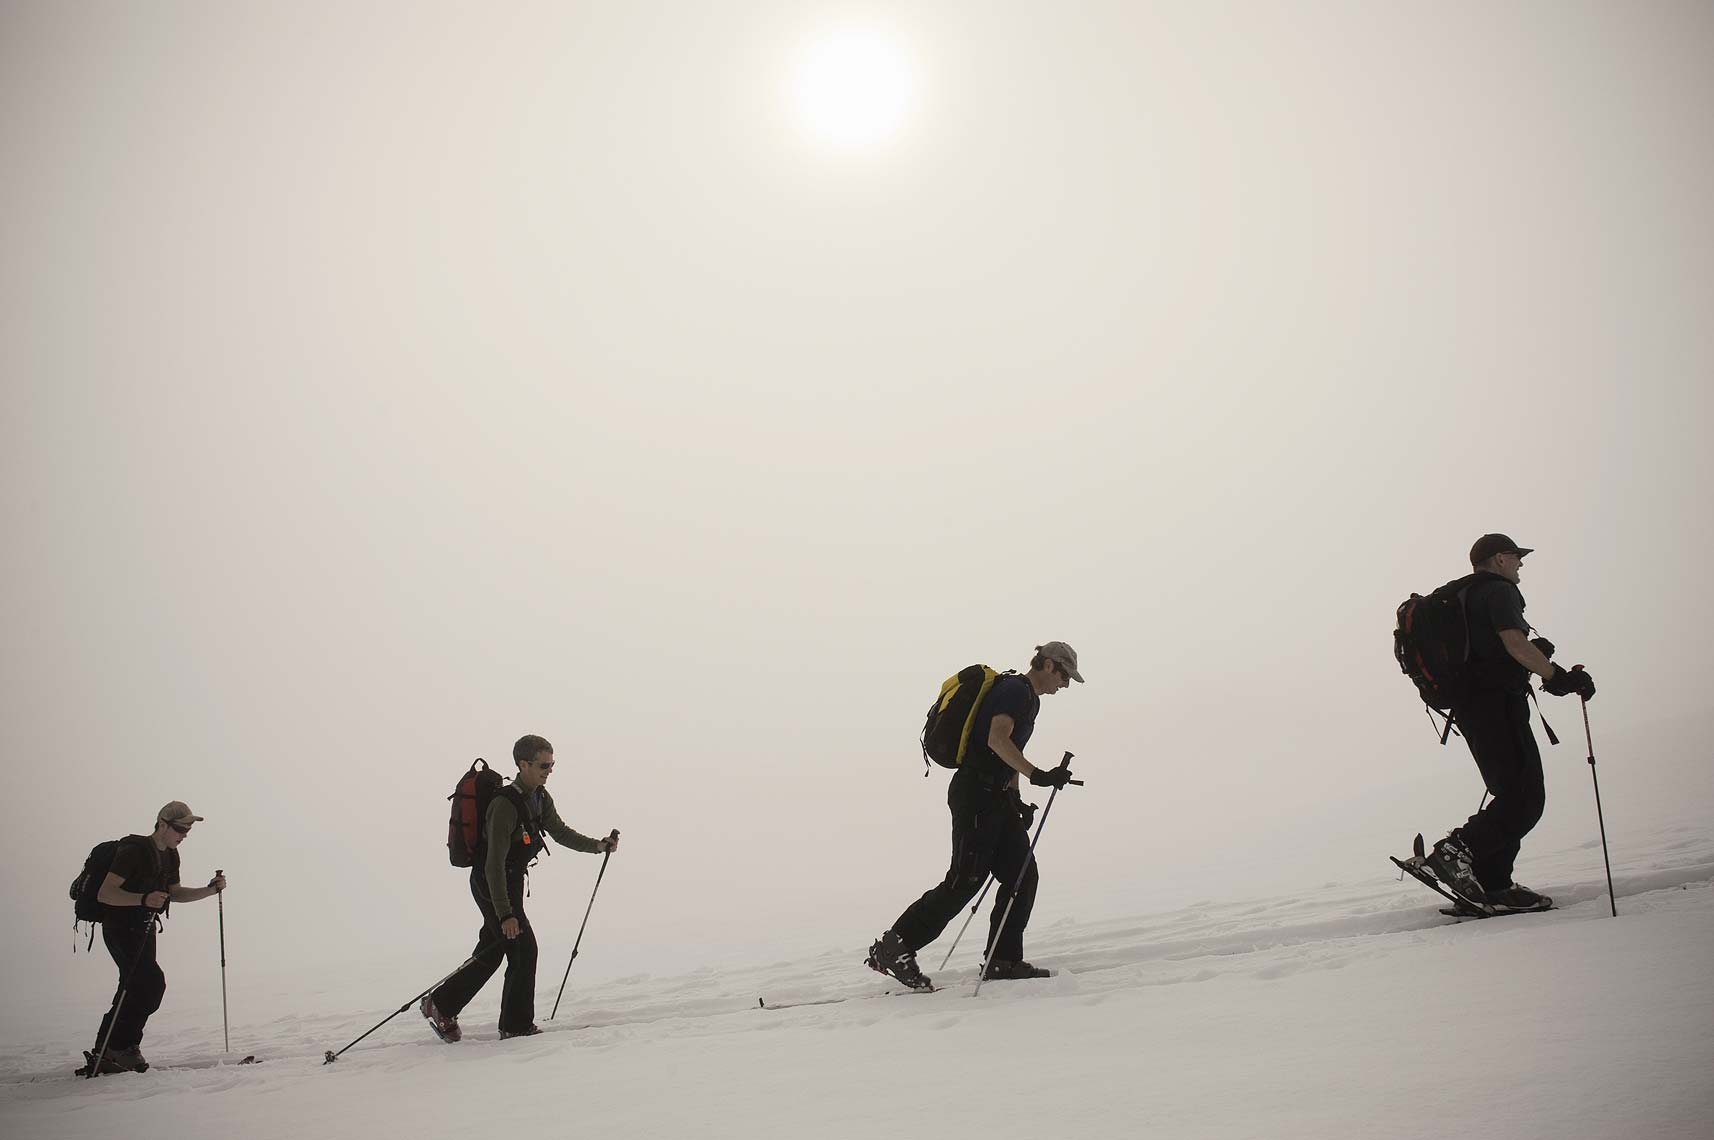 ski touring in fog Golden BC